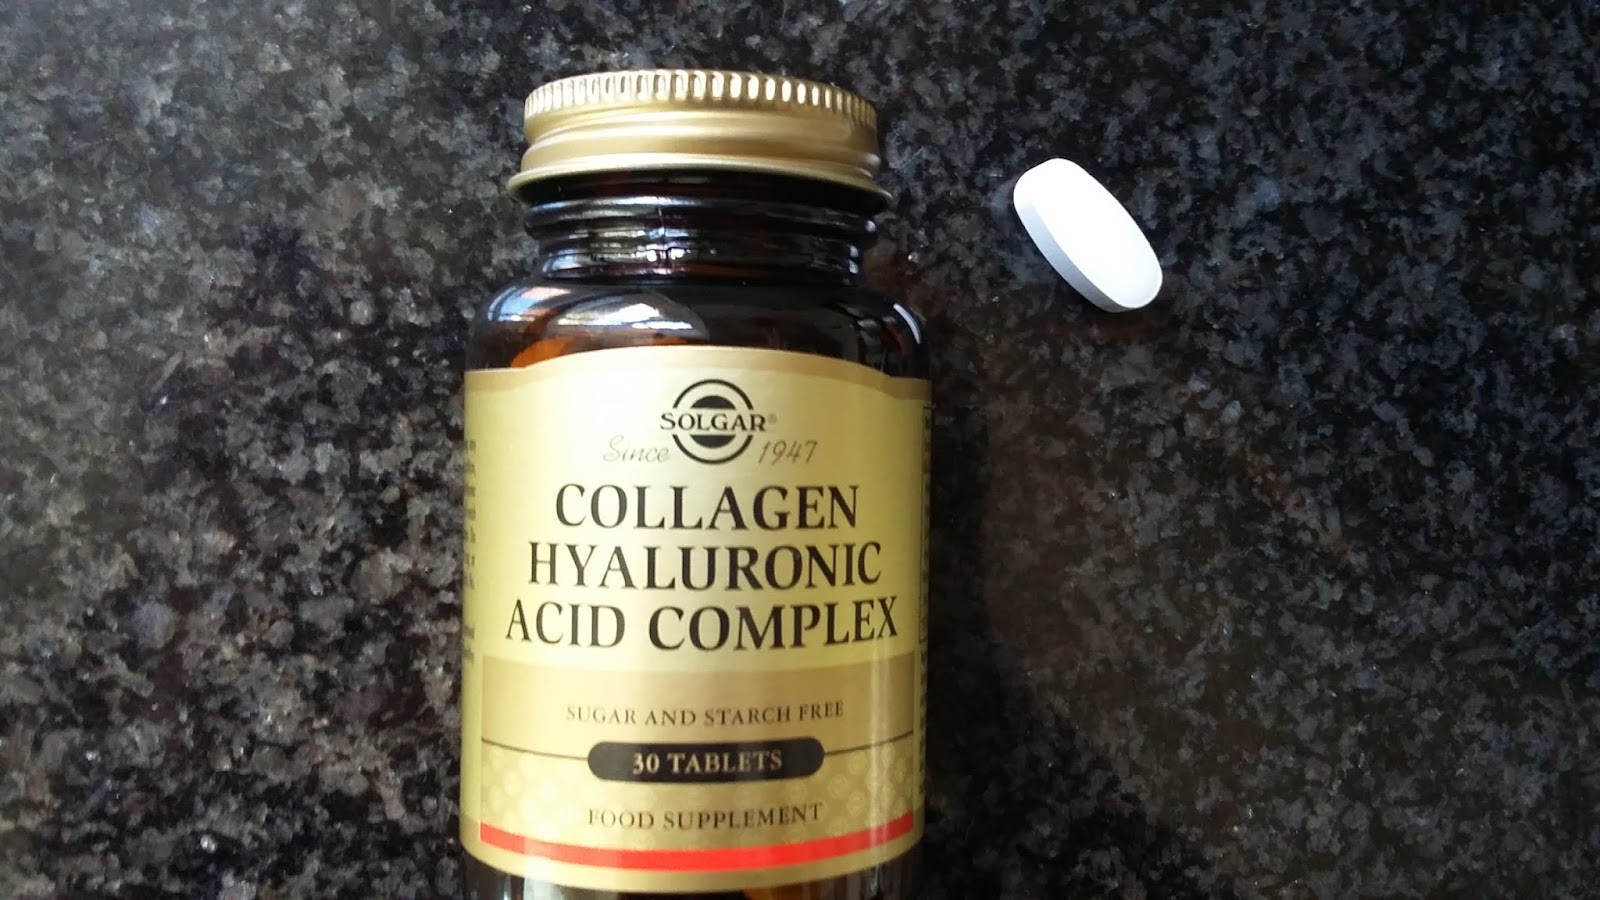 Collagen and hyaluronic acid tablets